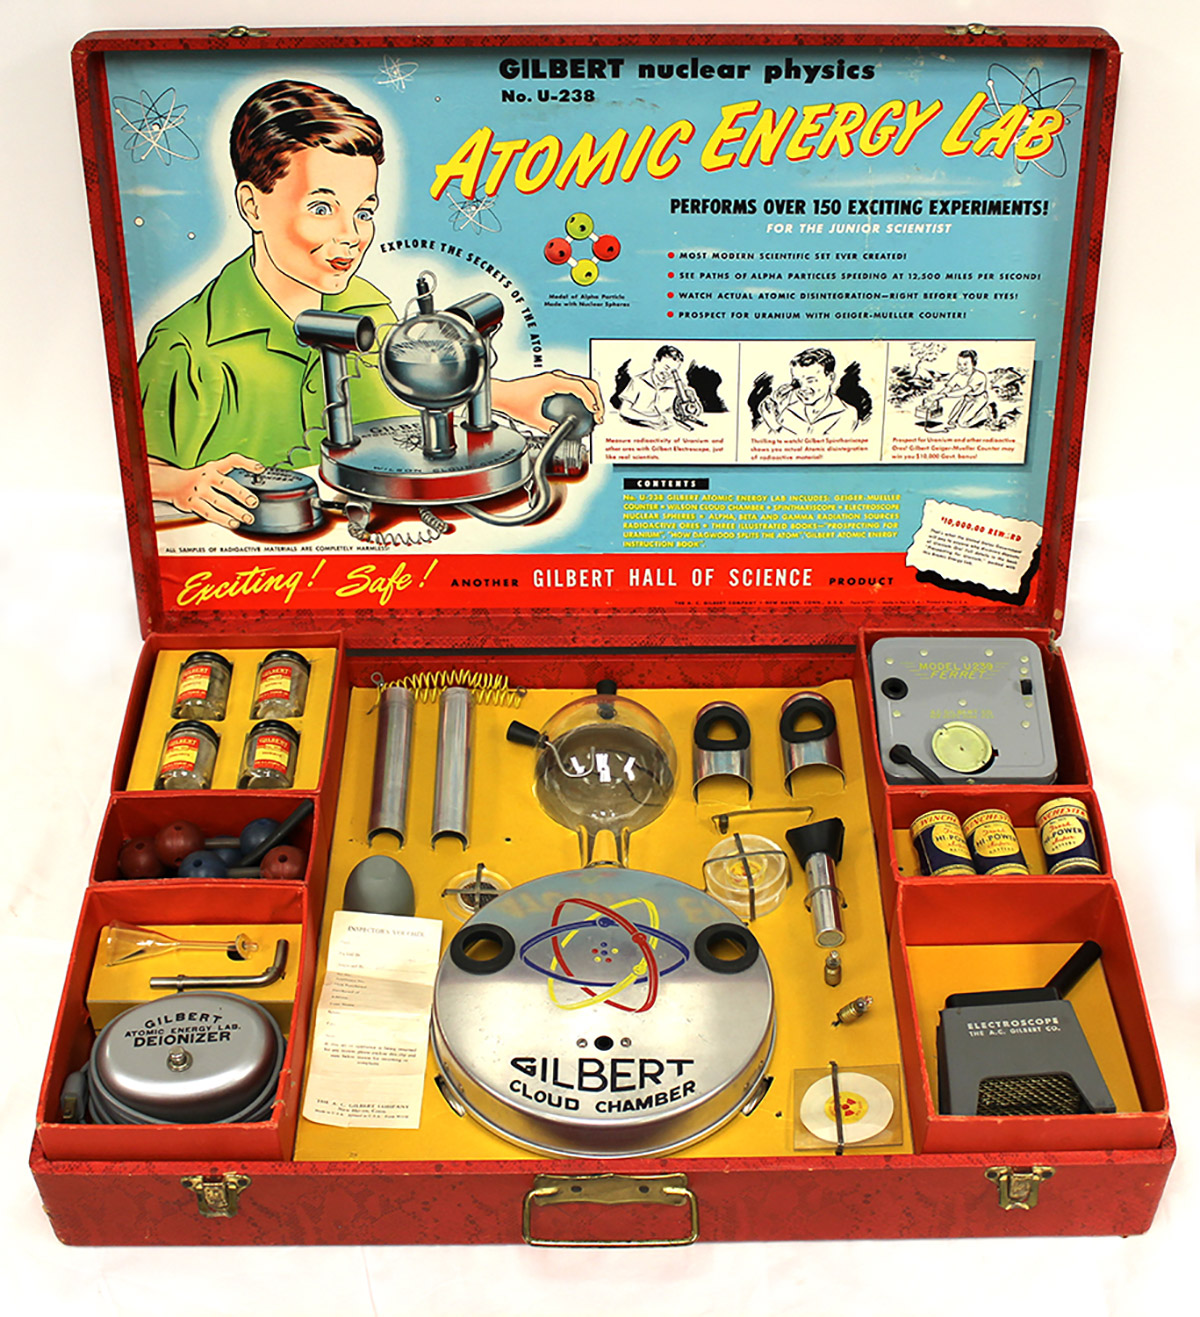 Atomic Finds: Rare collection and curator preserve radiation history